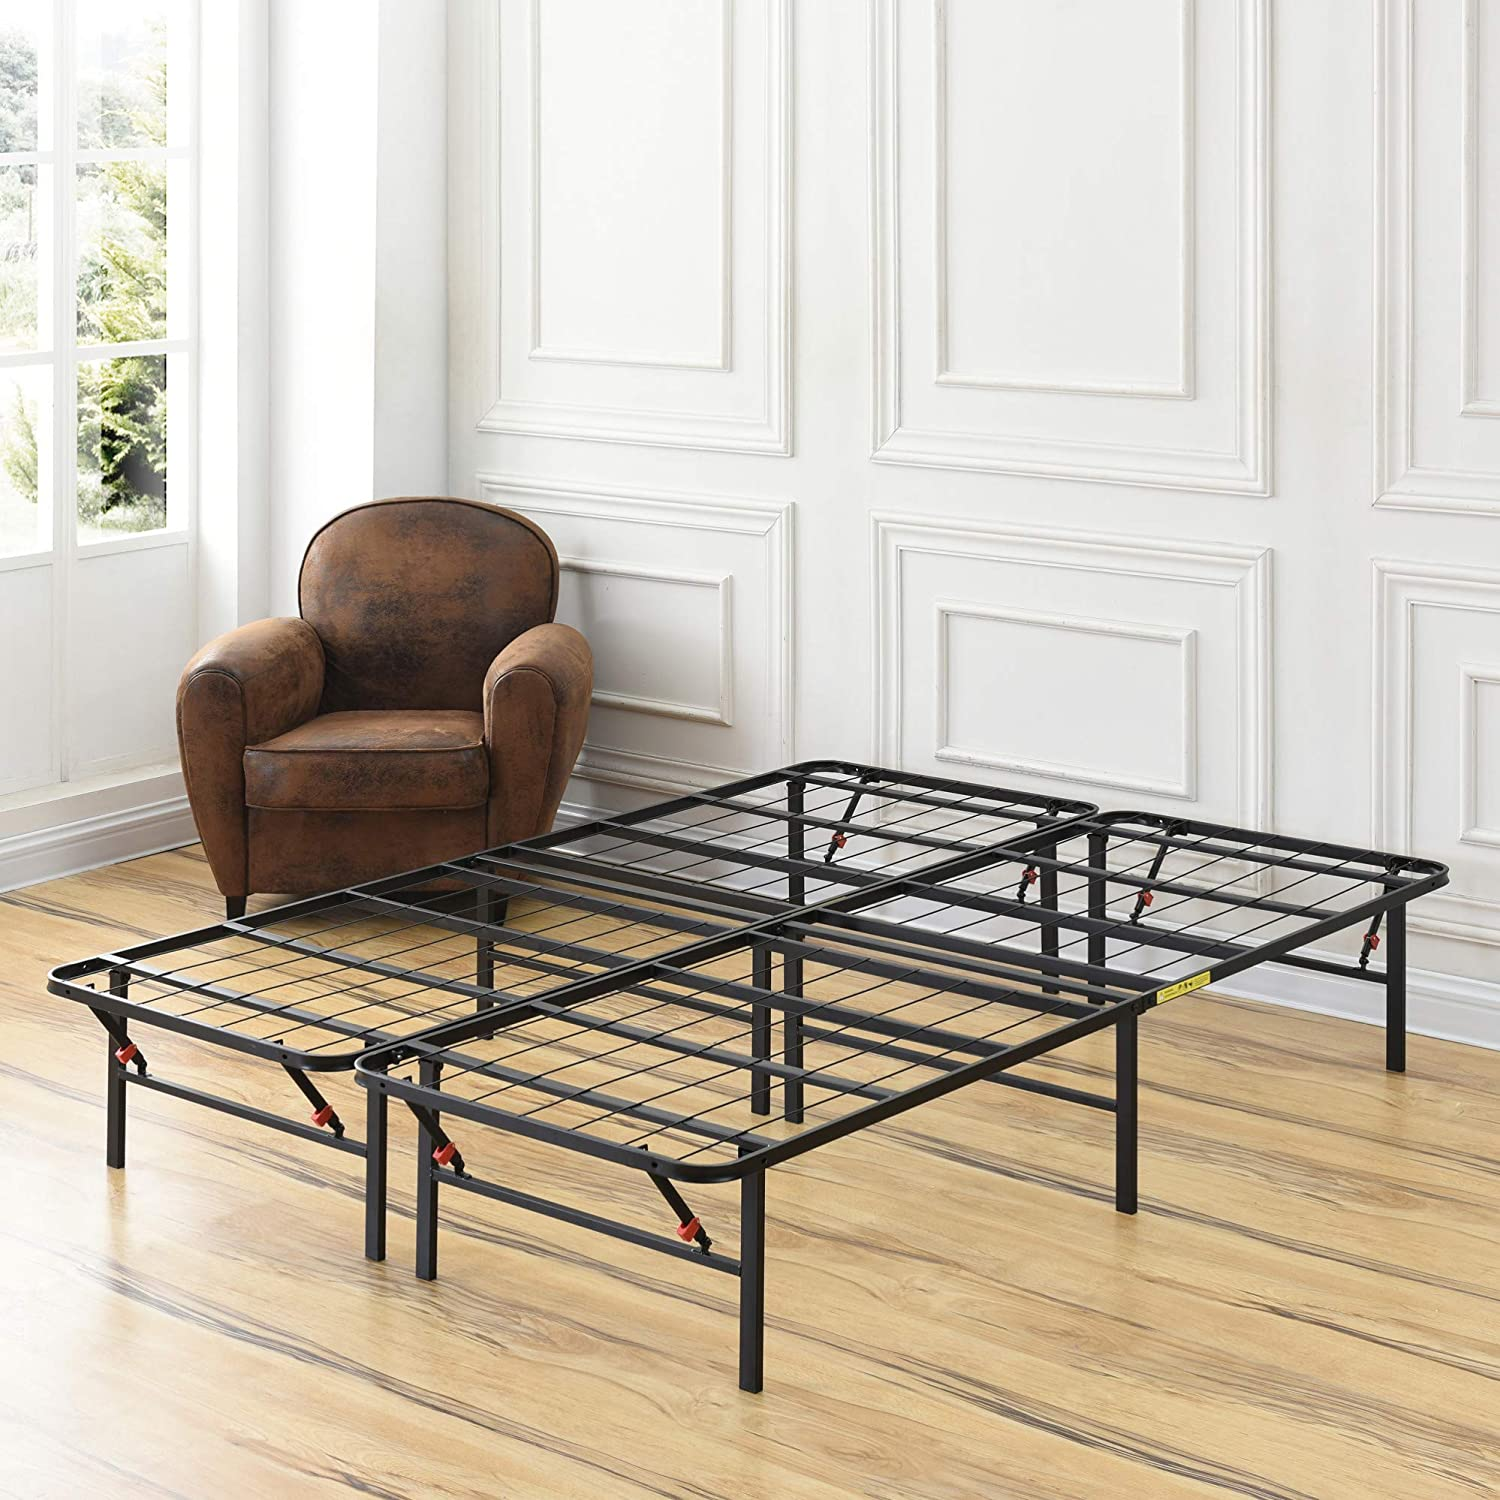 Classic Brands Hercules Baltimore Mall Heavy-Duty 14-Inch Platform Fr Bed Manufacturer OFFicial shop Metal